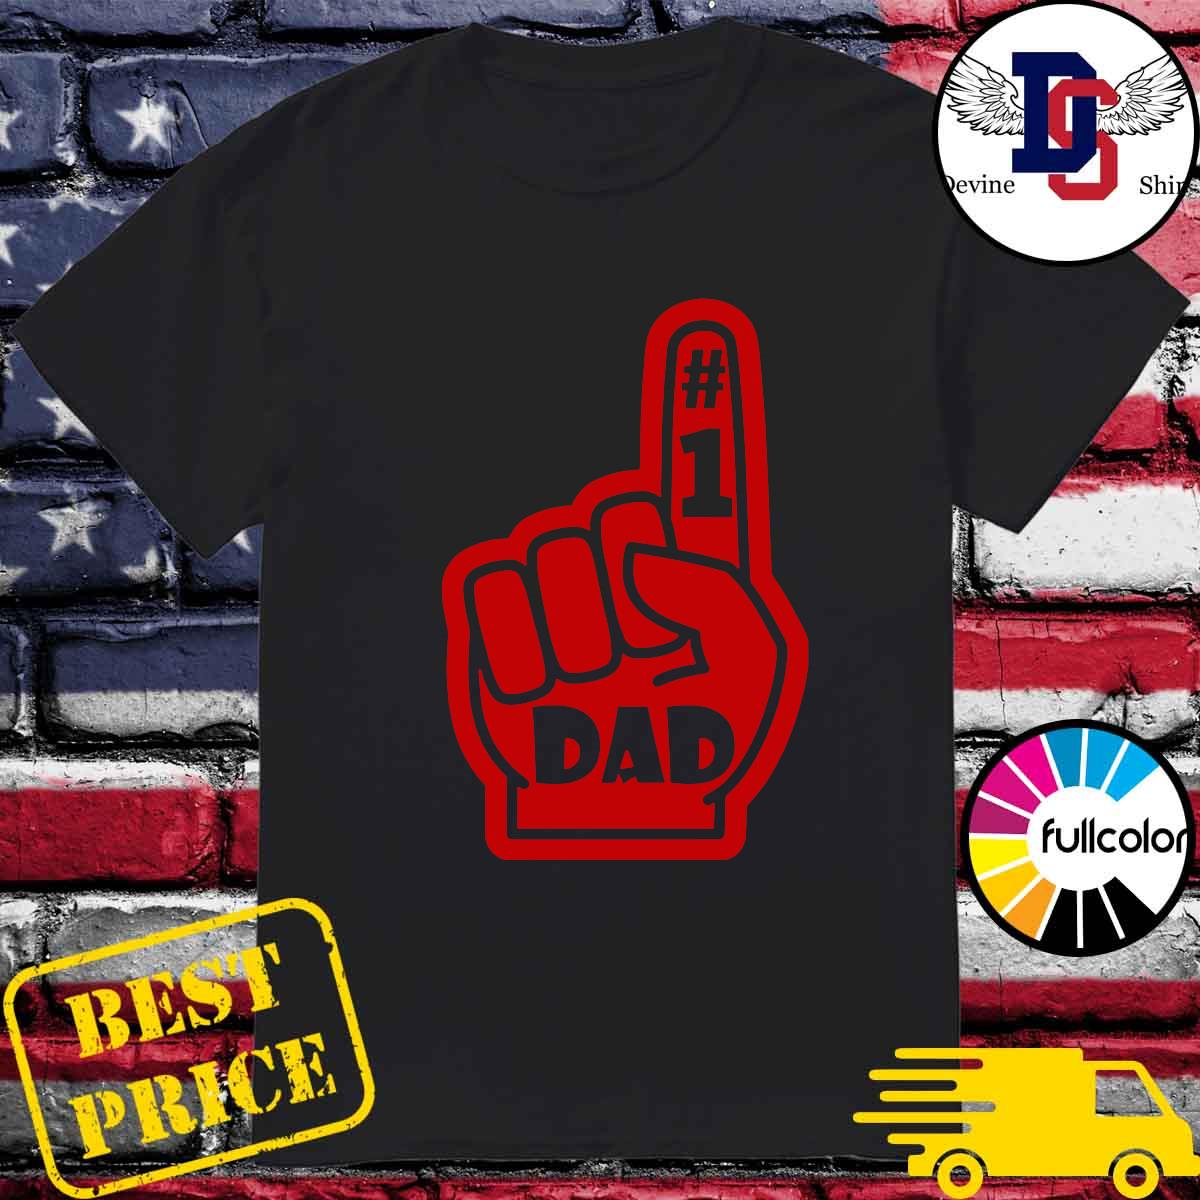 #1 Dad Number One Father's Day Shirt